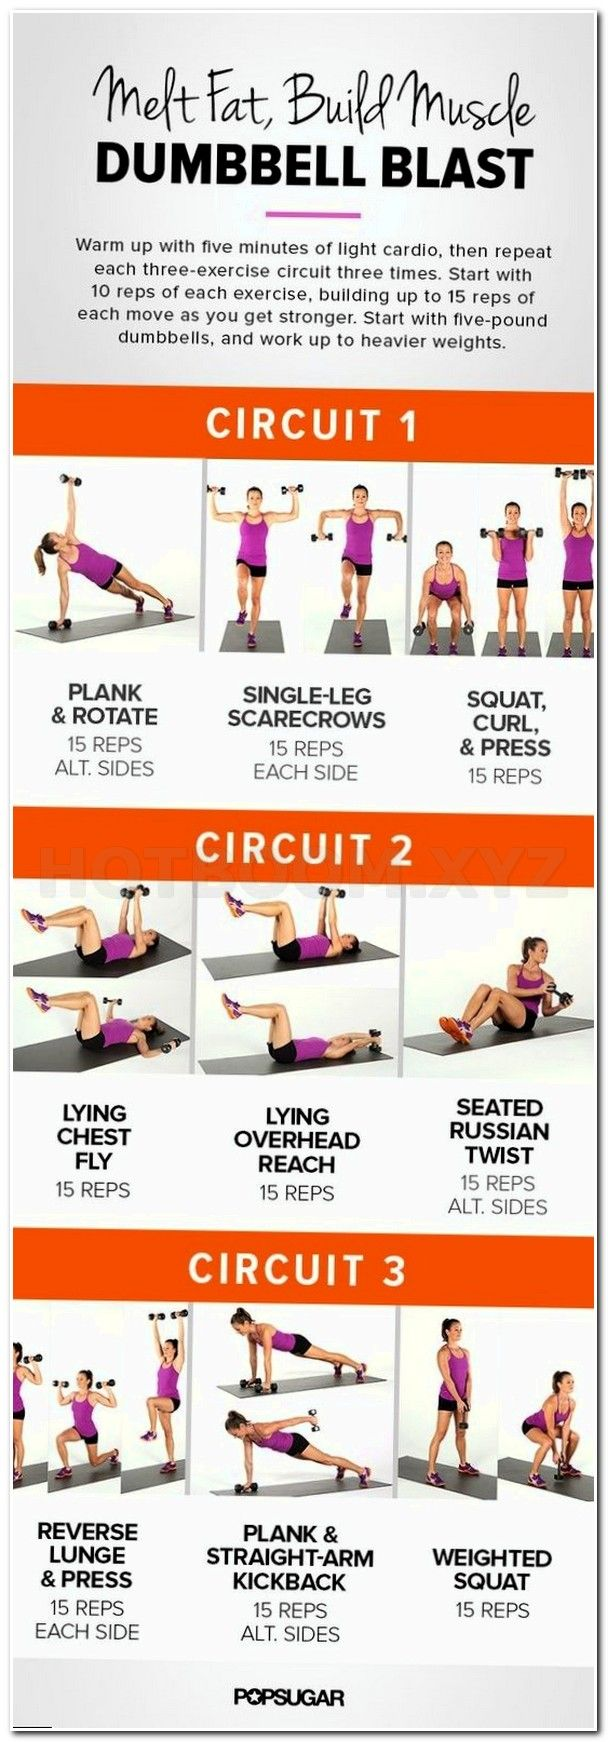 family fitness pla, elite fitness phuket, brock lesnar workout muscle and fitness, my fitness coach, lifetime family fitnes, gym workouts picture, lindora diet, fitness center west, weight loss workout plan for women, work out for the gy